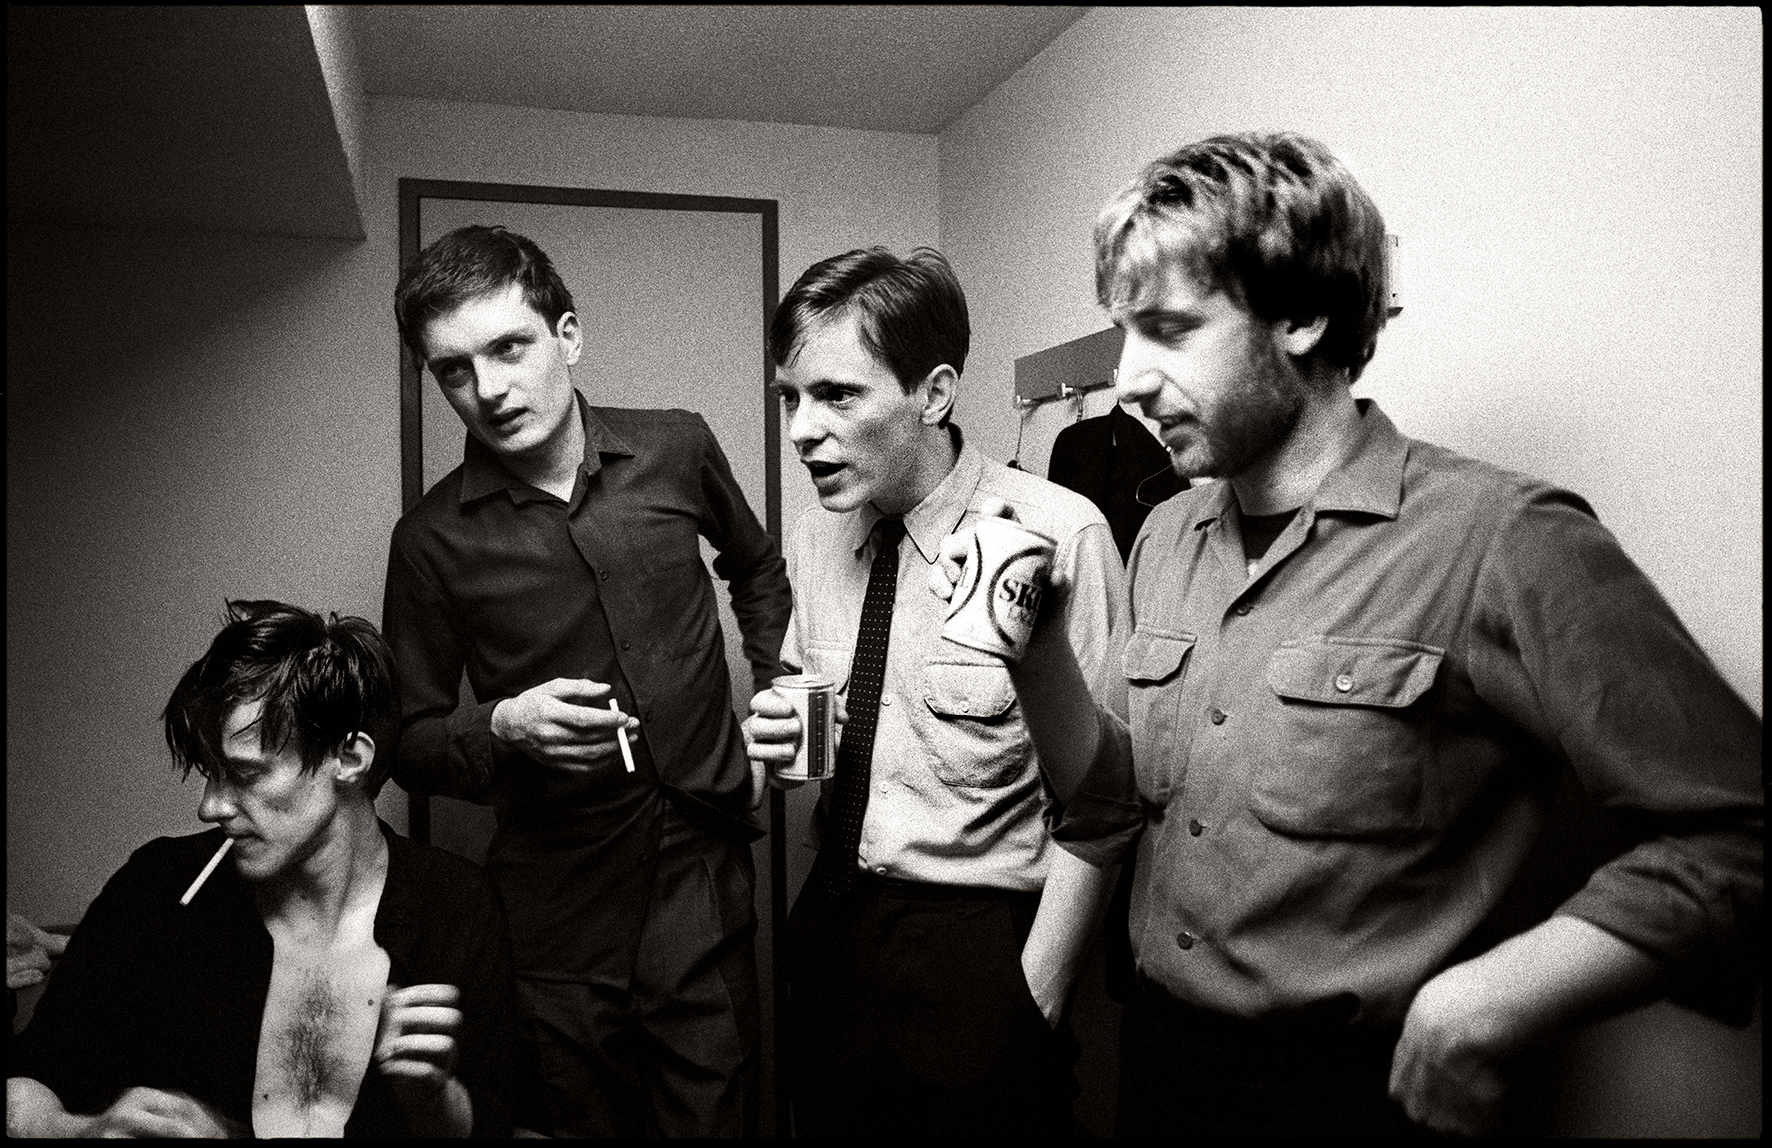 Joy Division, Jill Furmanovsky, There Is A Light That Never Goes Out, Manchester Central Library, Photo Exhibition, Music